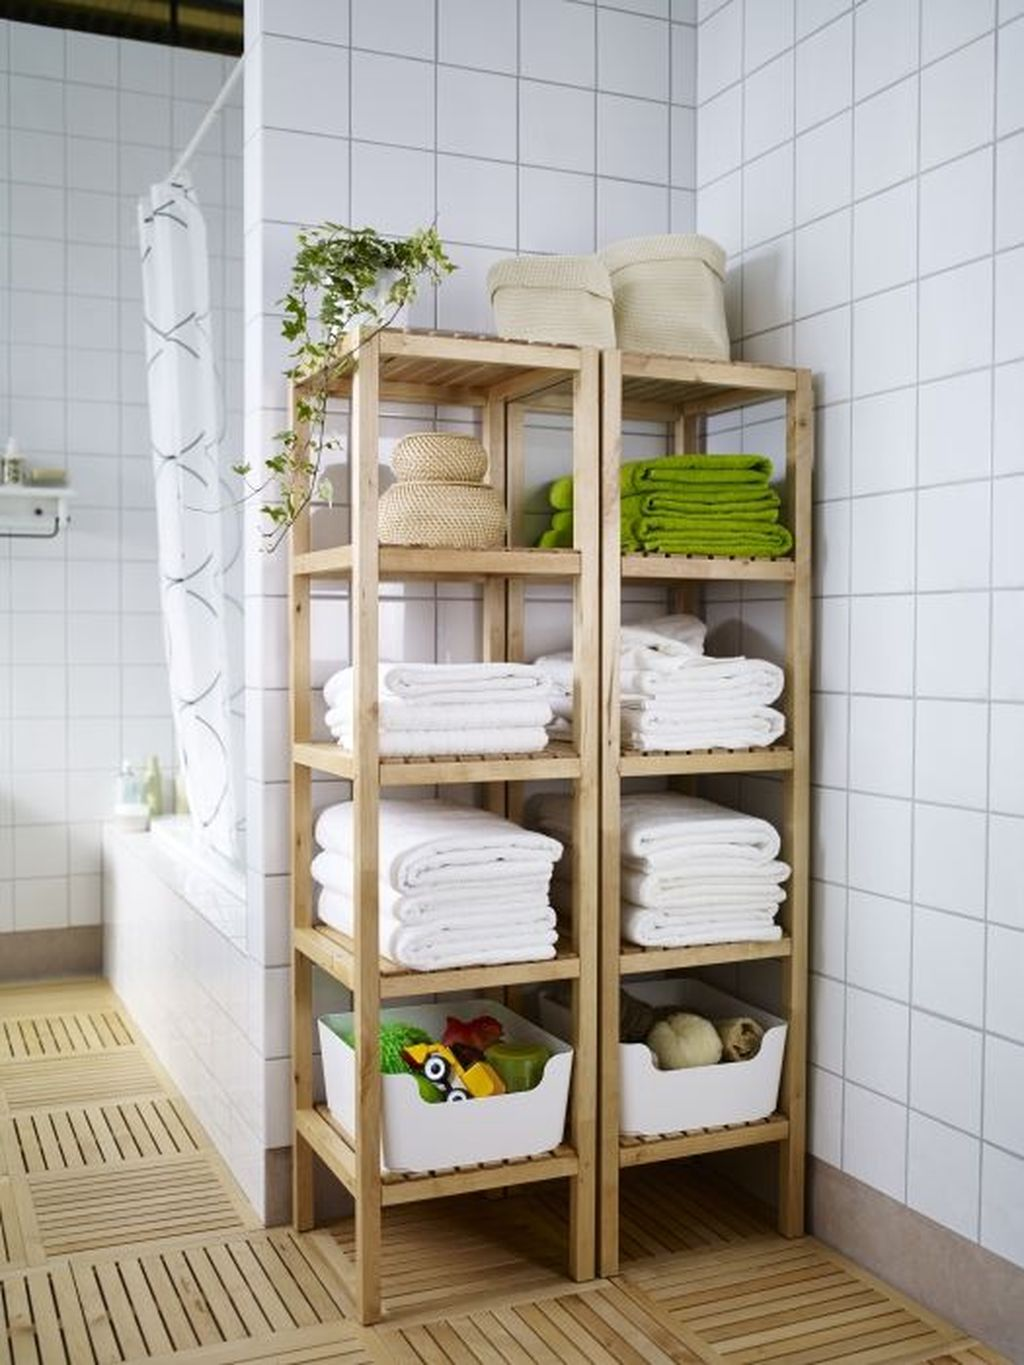 Amazing Bathroom Storage Design Ideas For Small Space 19